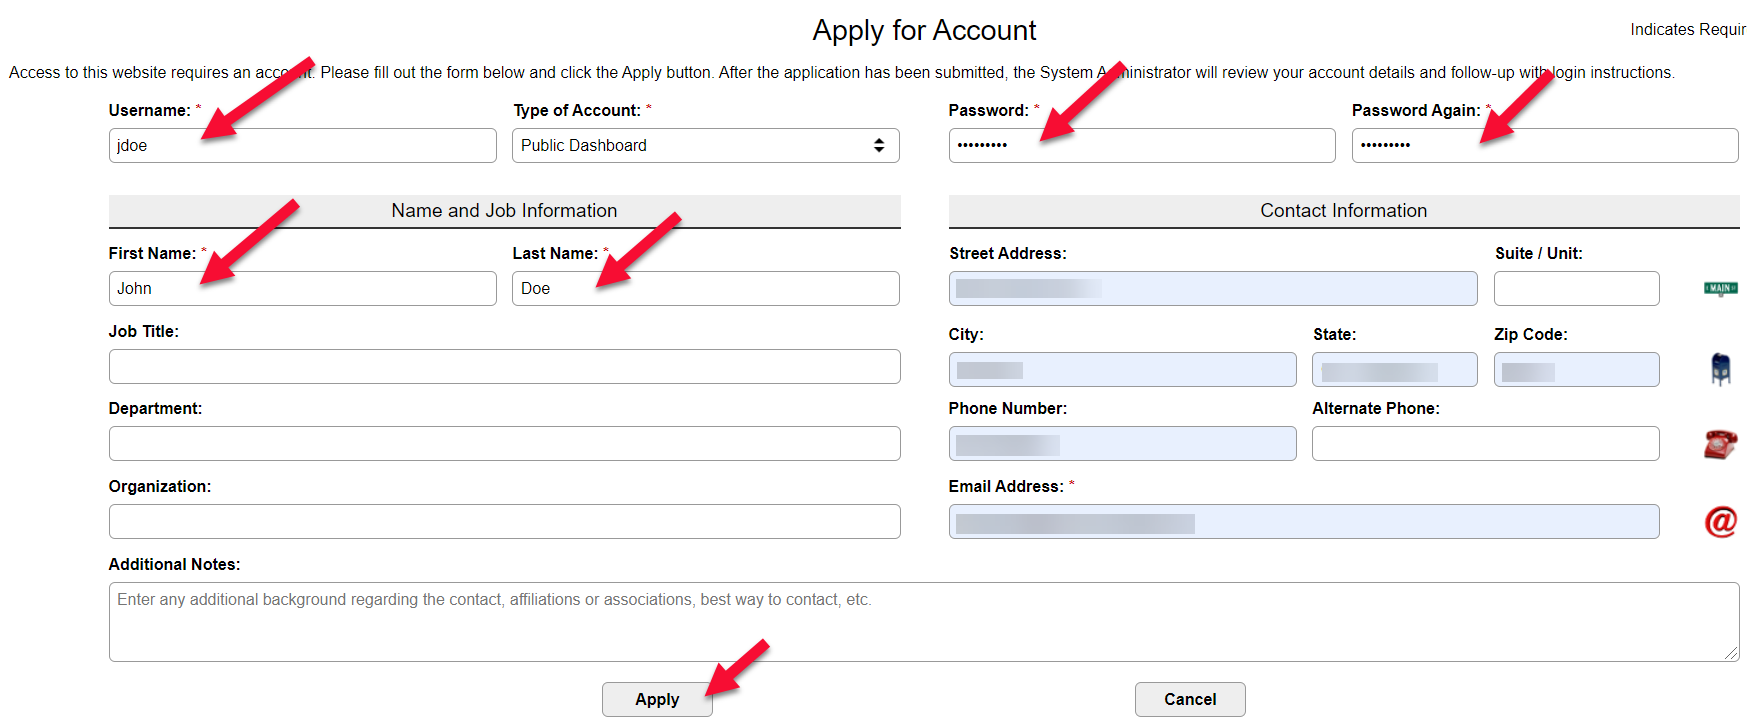 Image of Apply for Account screen to input user information